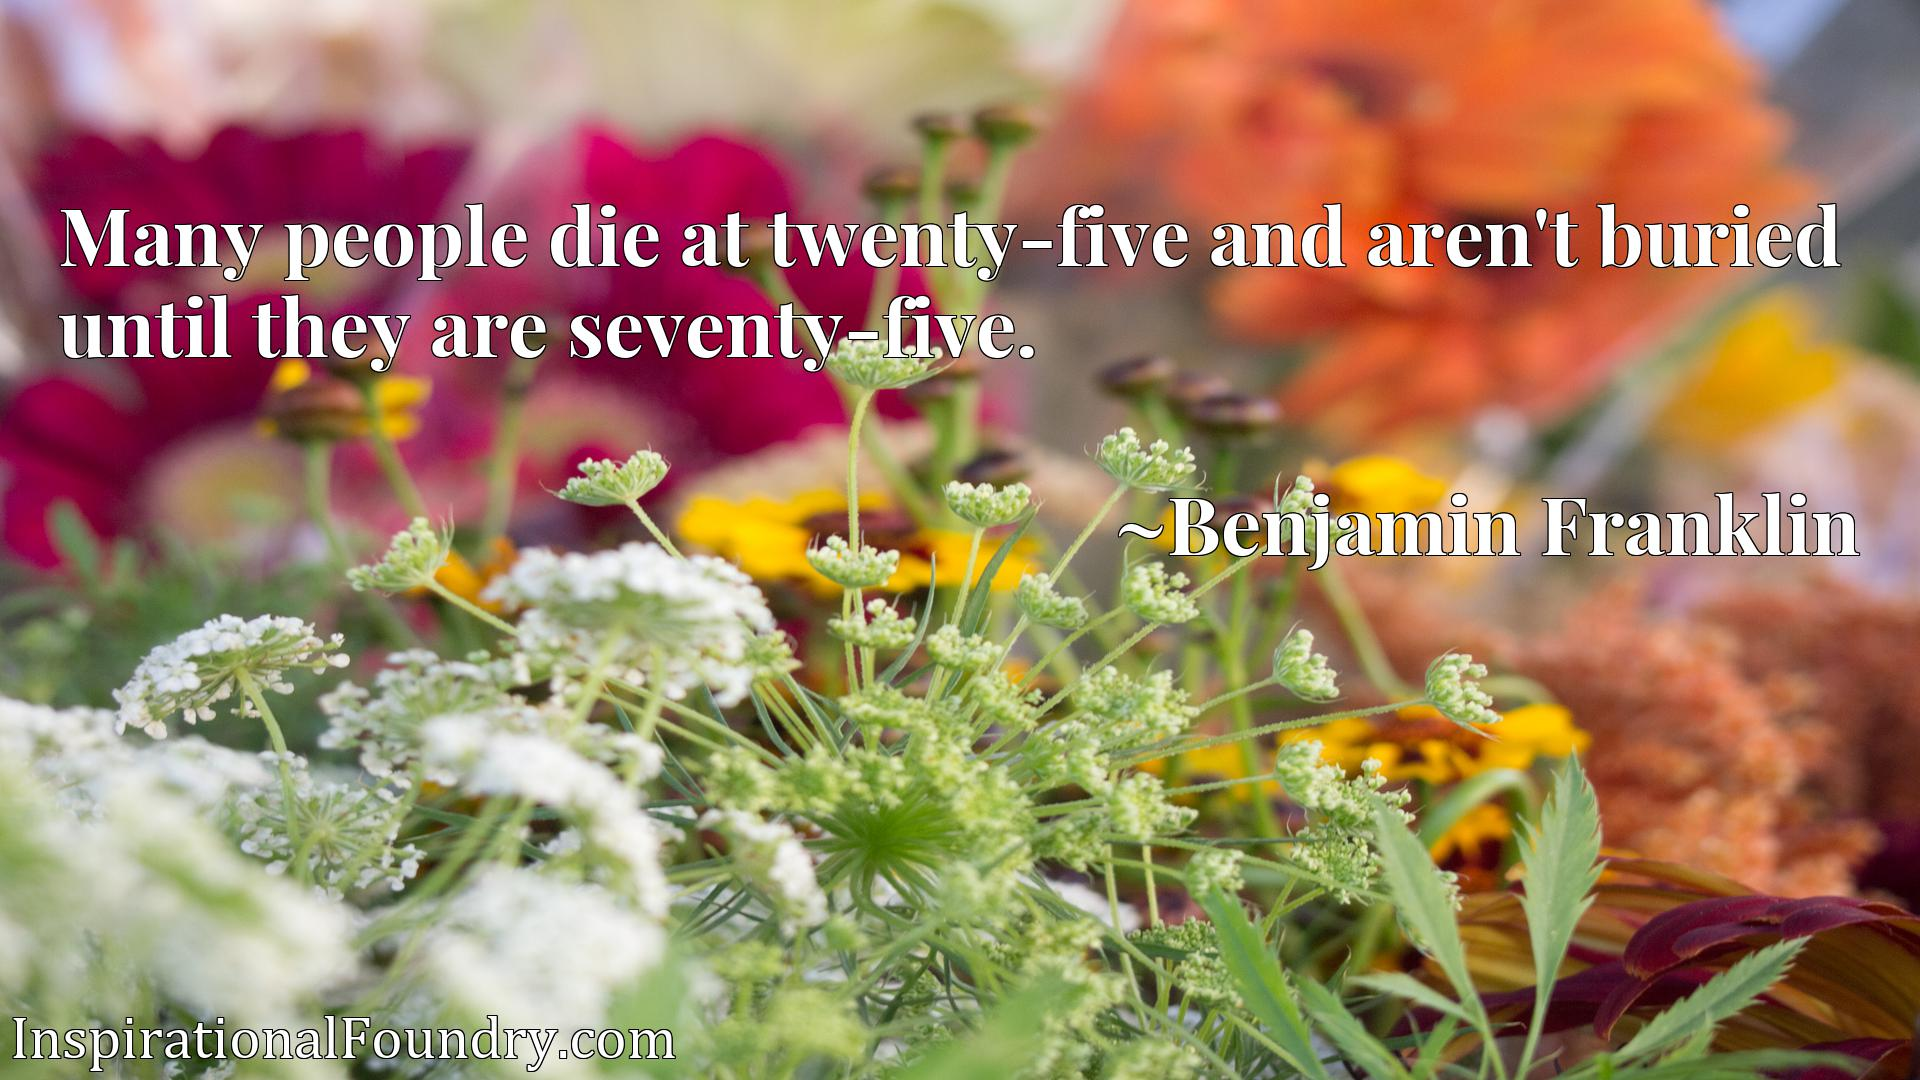 Many people die at twenty-five and aren't buried until they are seventy-five.